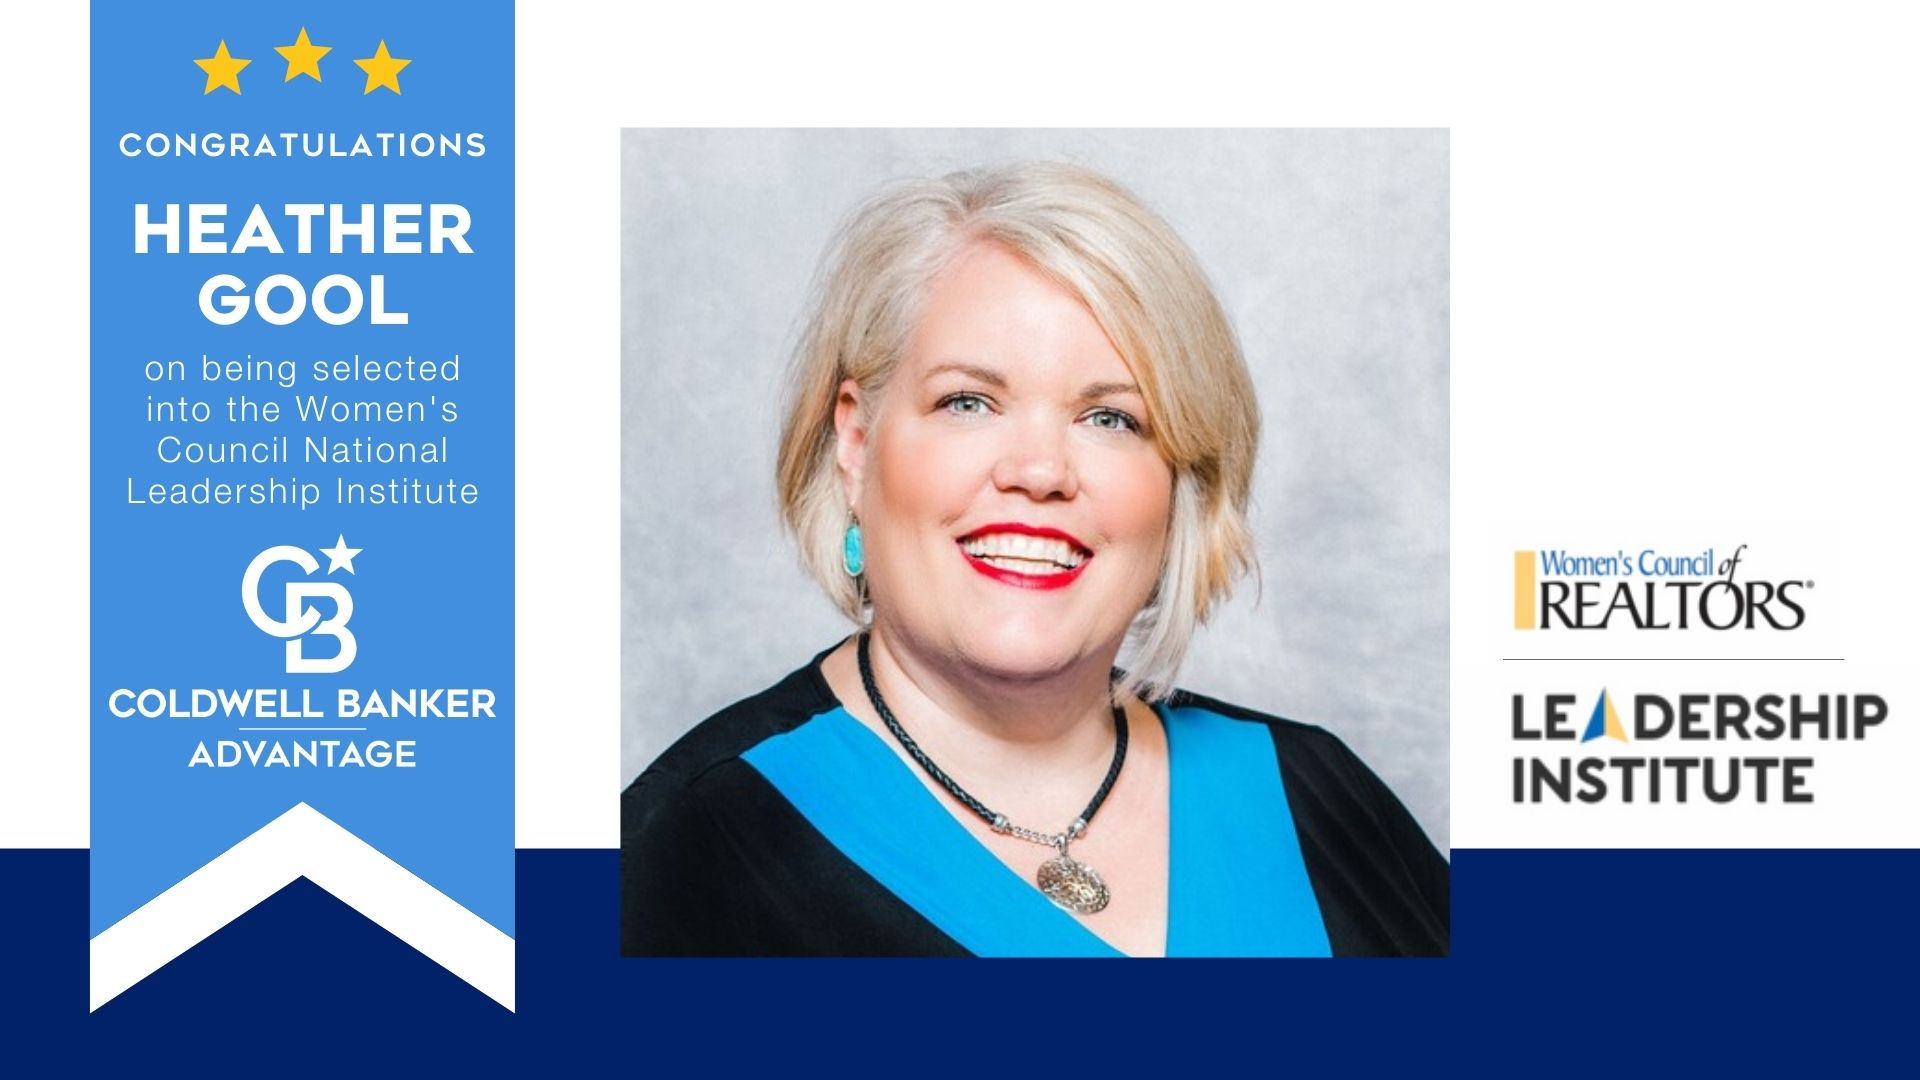 Heather Gool is selected as part of the 2022 Class of the WCR's Leadership Institute Main Photo